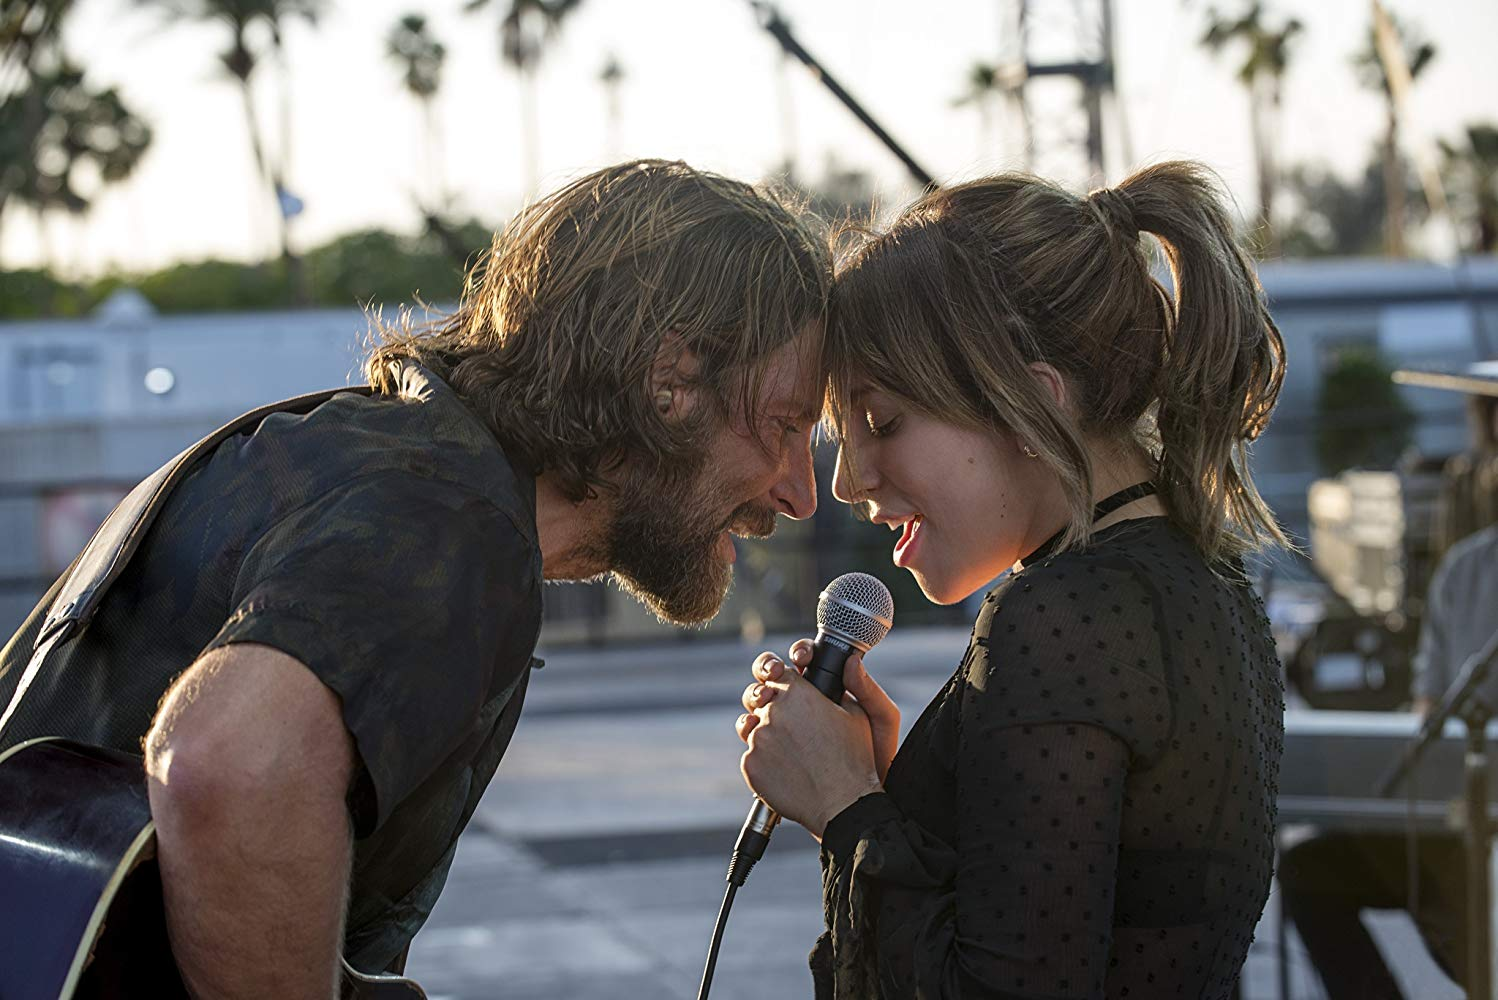 Bradley Cooper, with long, lank hair and a beard, presses his forehead to a brunette Lady Gaga's. He holds a guitar and she holds a microphone.